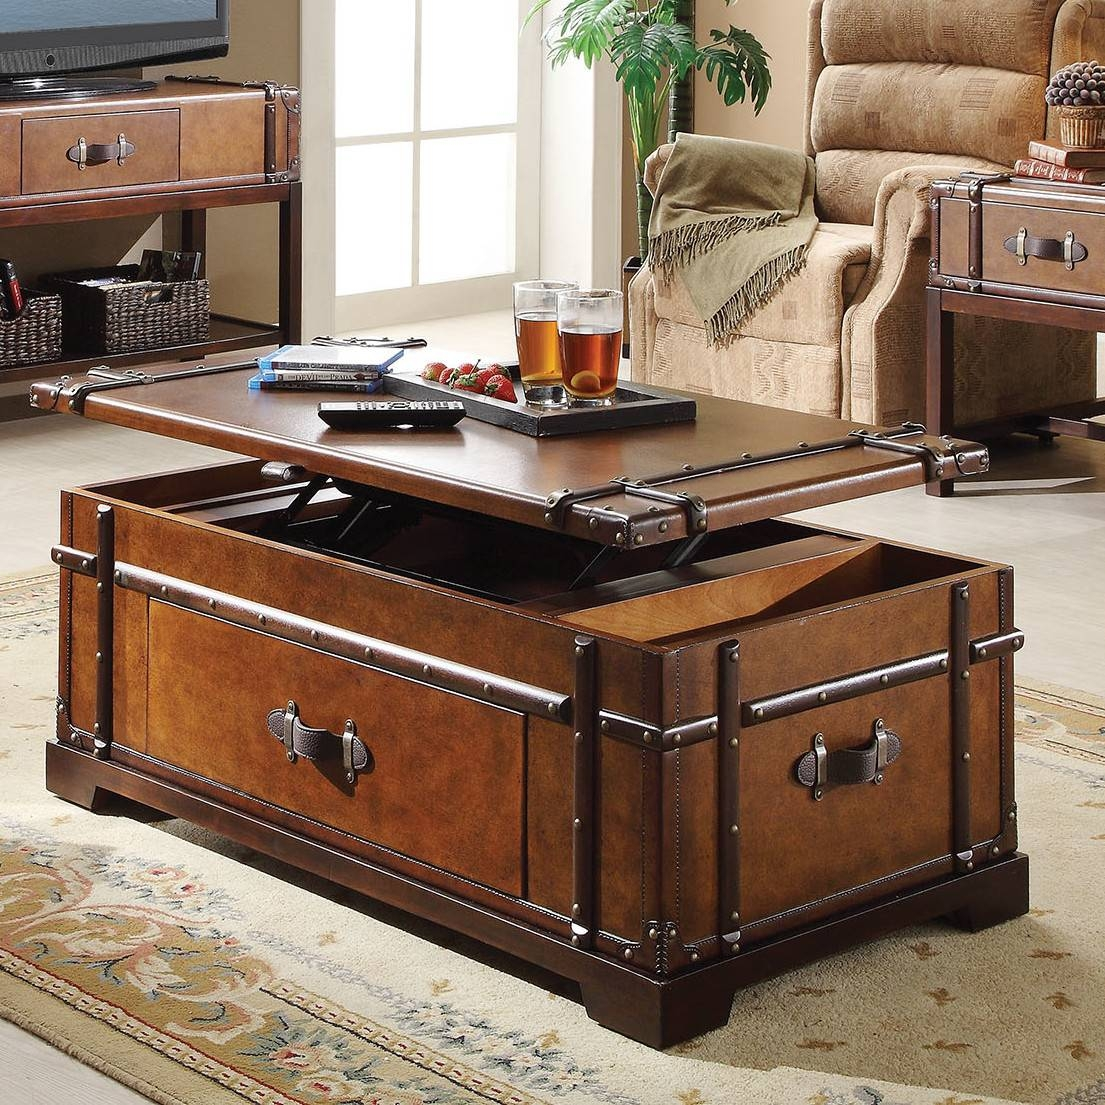 Ideas For Painting A Steamer Trunk Coffee Table with regard to Trunk Coffee Tables (Image 14 of 30)